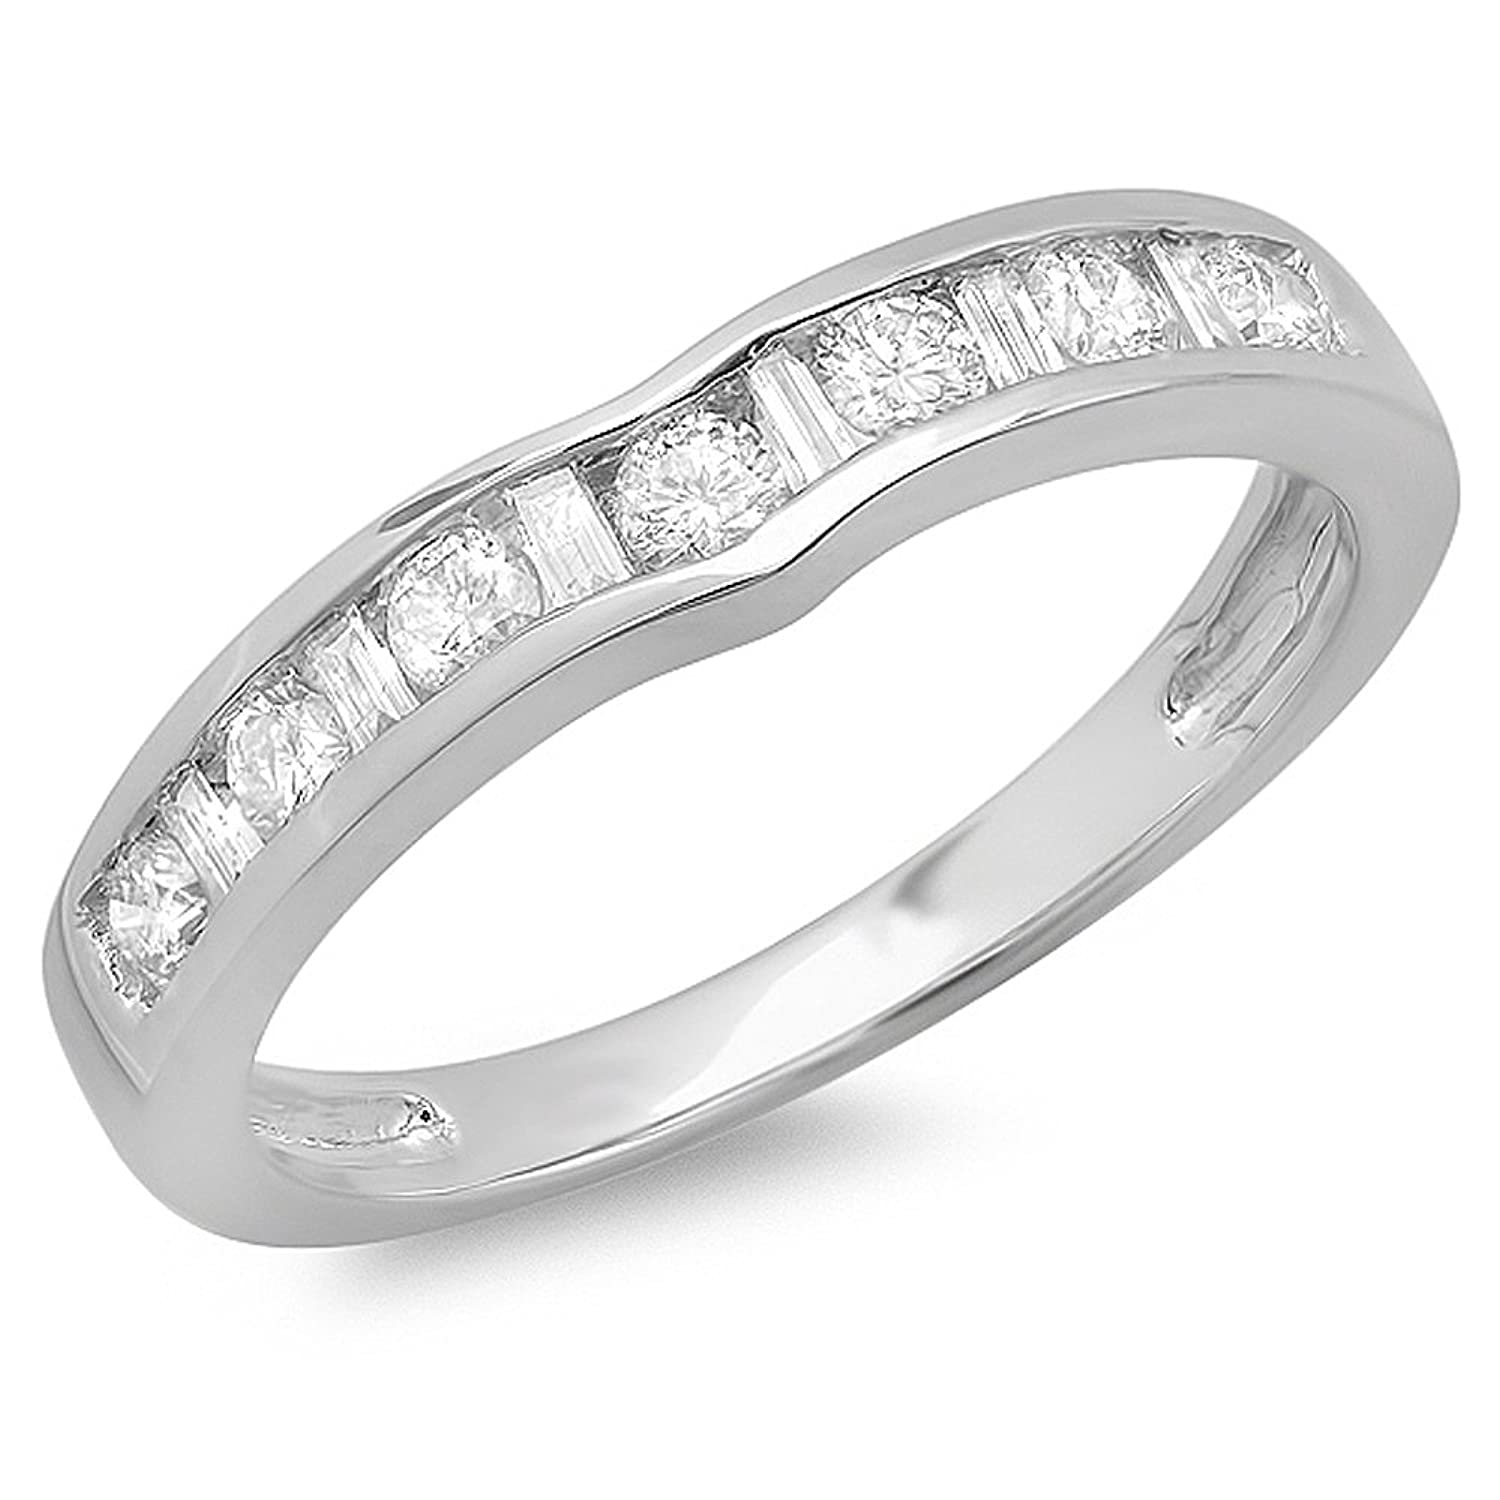 0.50 Carat (ctw) 14K White Gold Alternating Diamond Channel Set Wedding Band Stackable Ring 1/2 CT